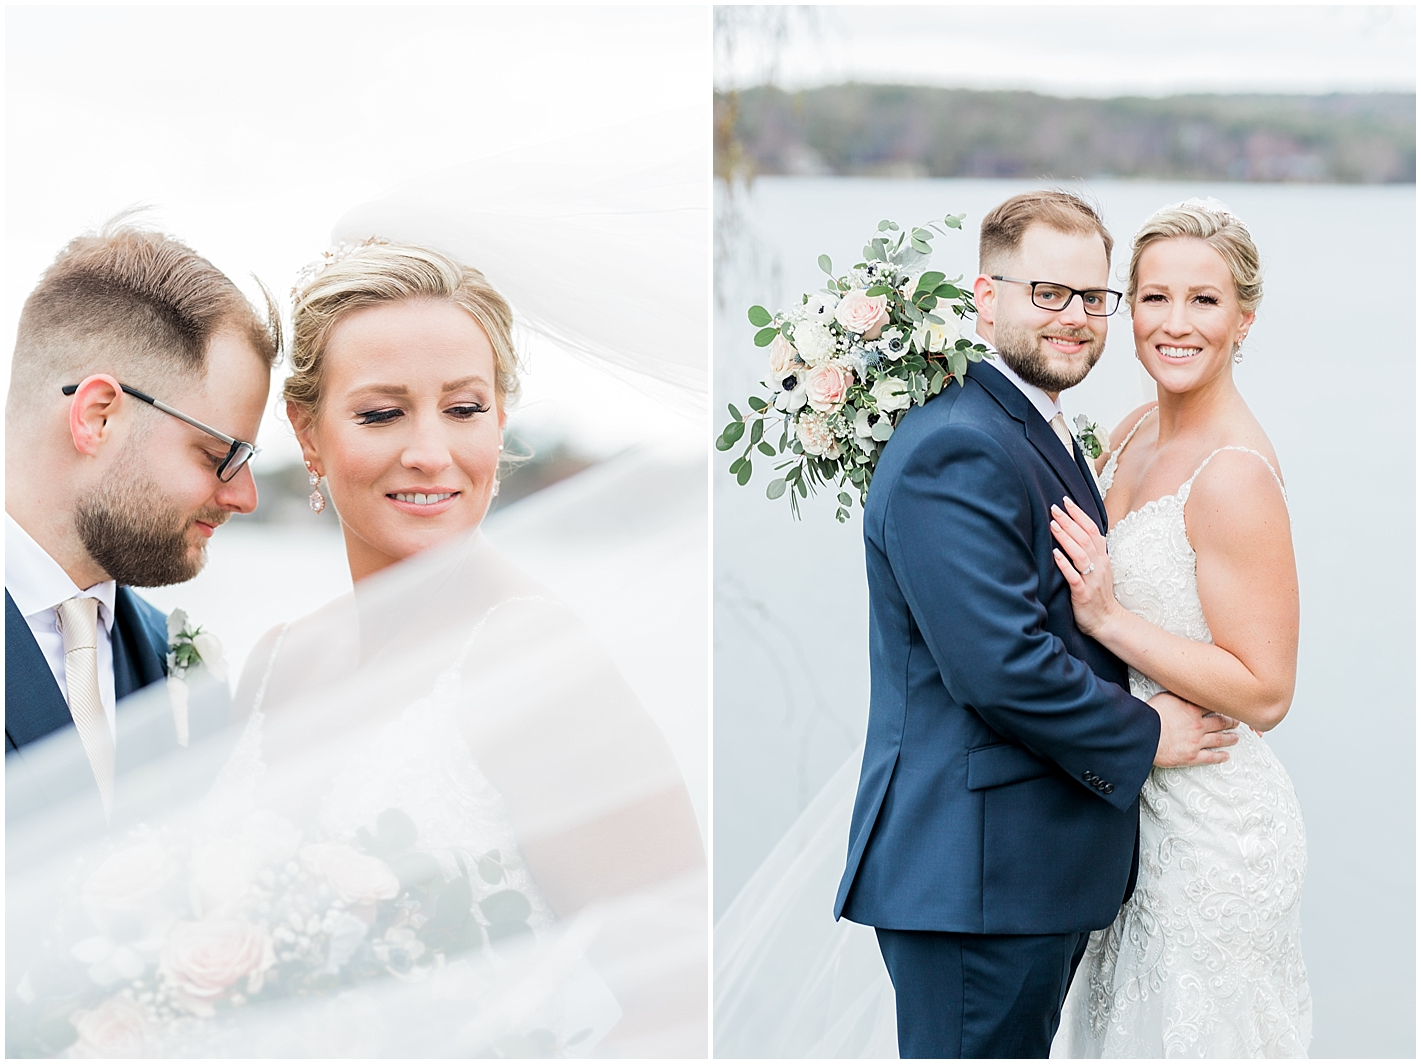 Timeless Wedding Portrait Photographer New Hampshire Photos by Alyssa Parker Photography